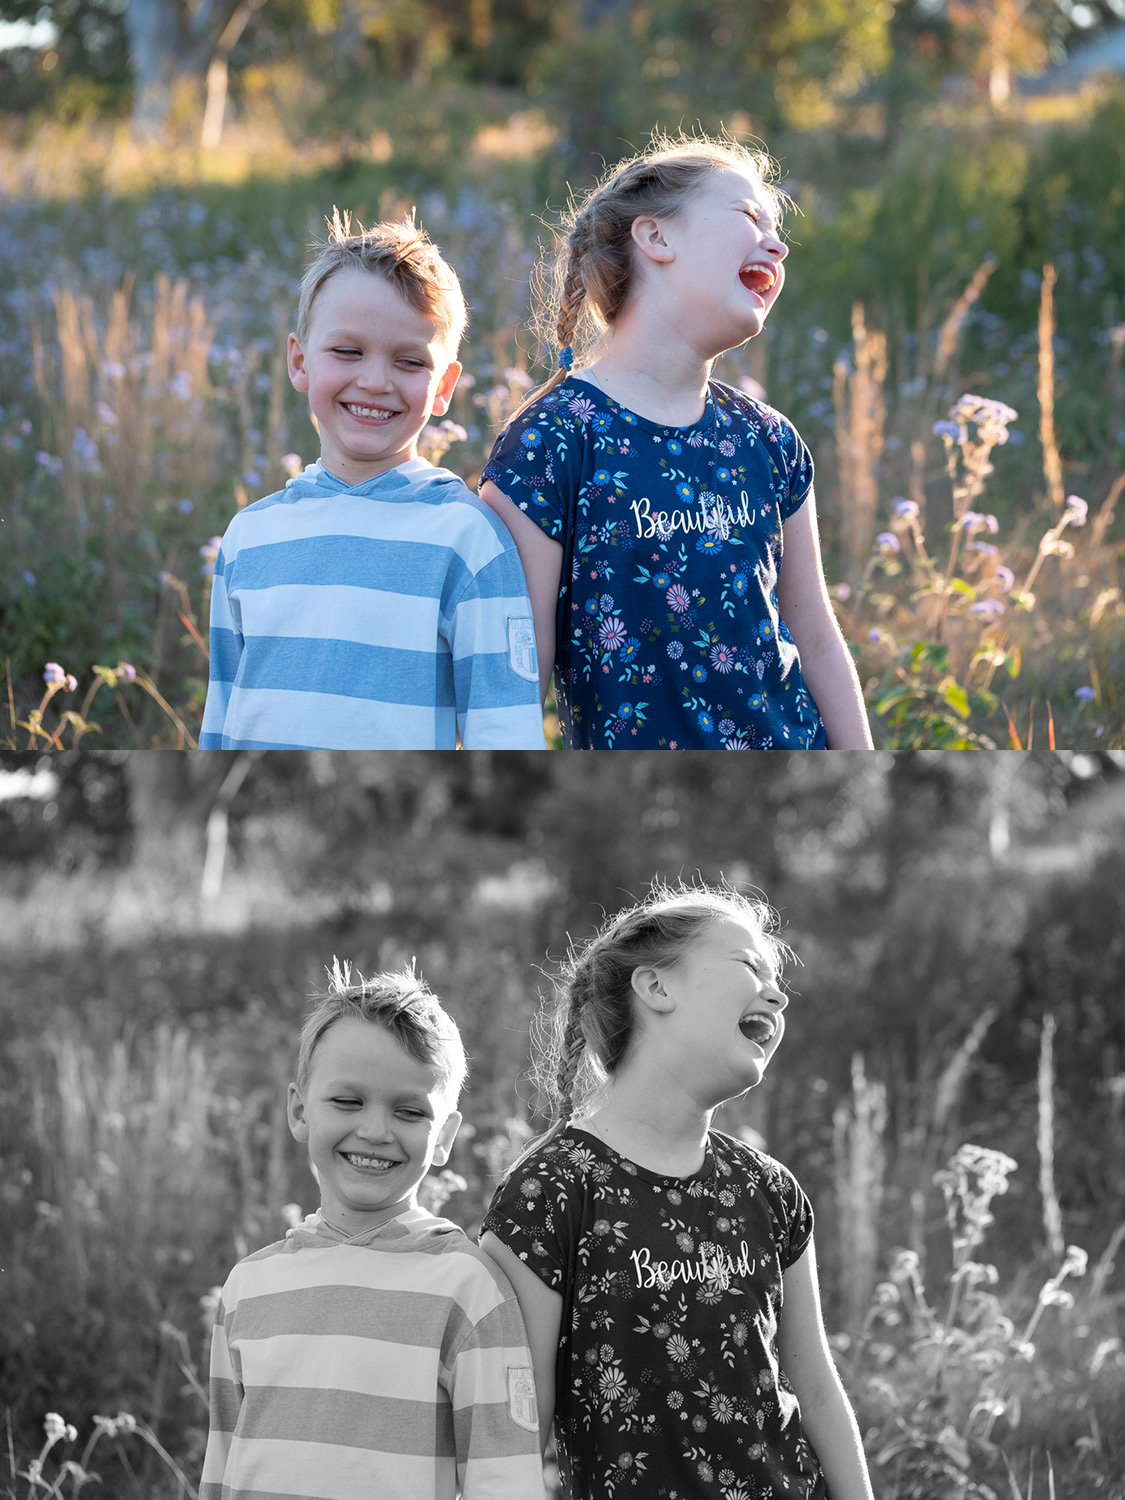 Image: Top: Kids in a filed RAW file. Bottom: Acros JPG.